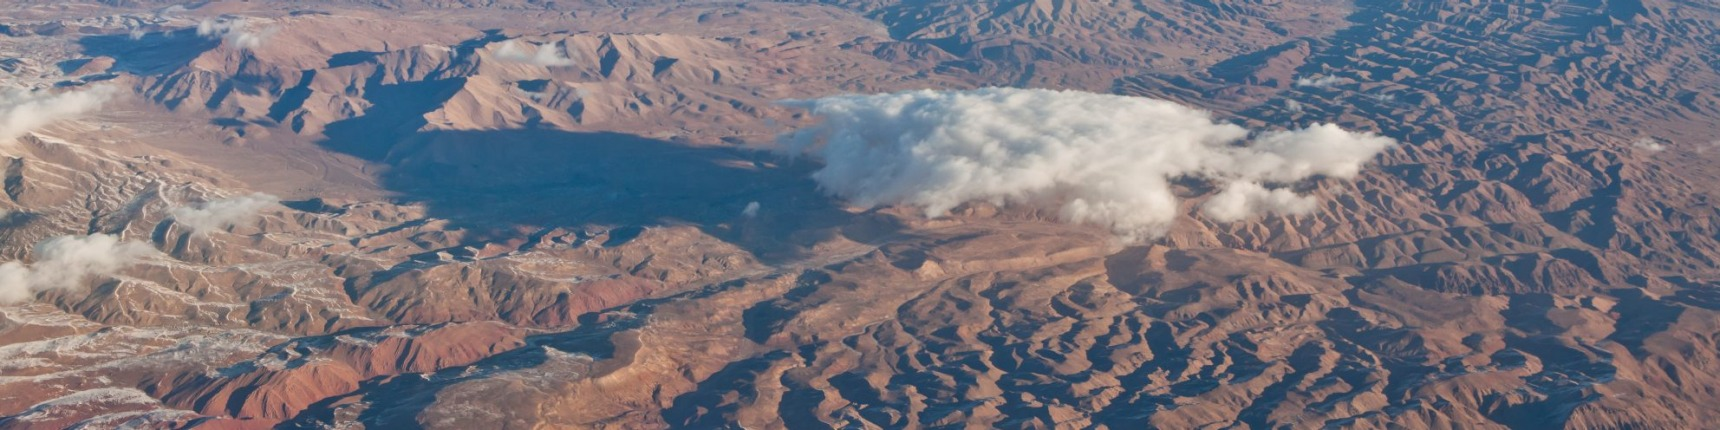 Afghanistan, mountains, aerial shot